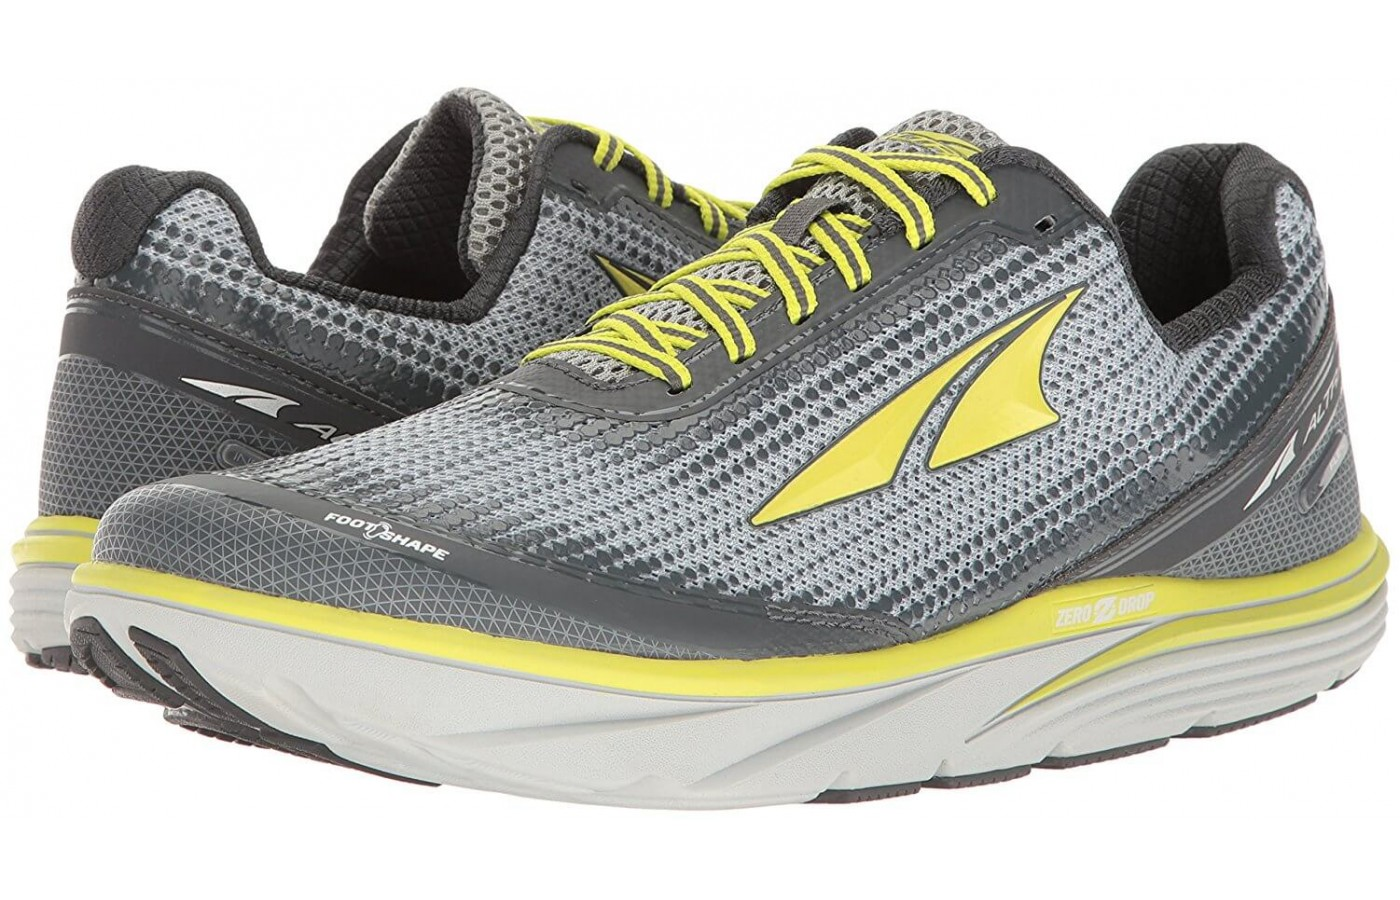 The Altra Torin 3.0 features a 28mm stack height